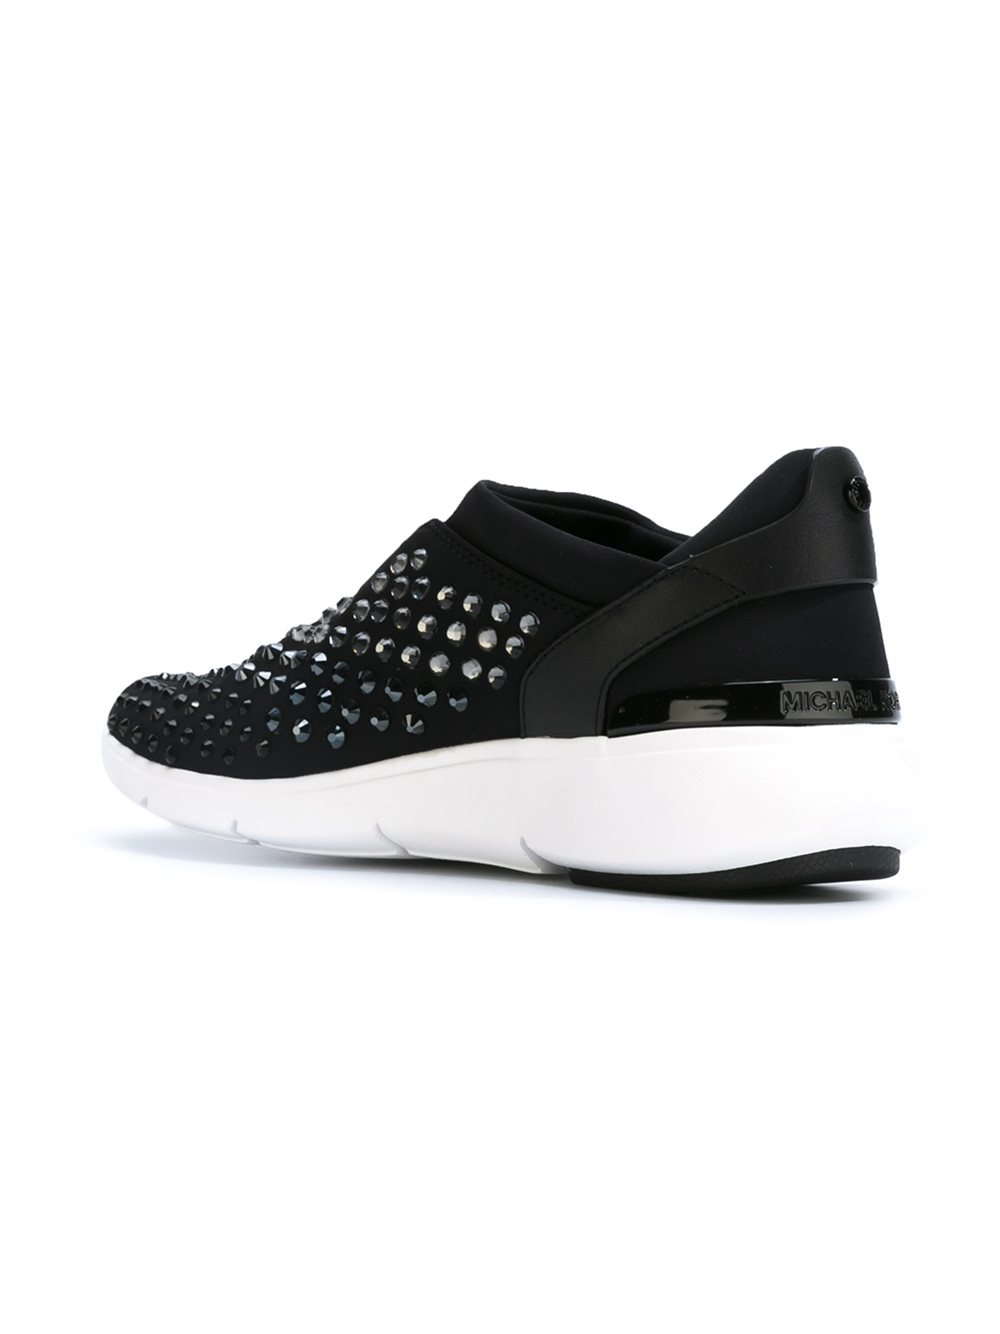 MICHAEL Michael Kors Rubber Embellished 'ace' Sneakers in Black